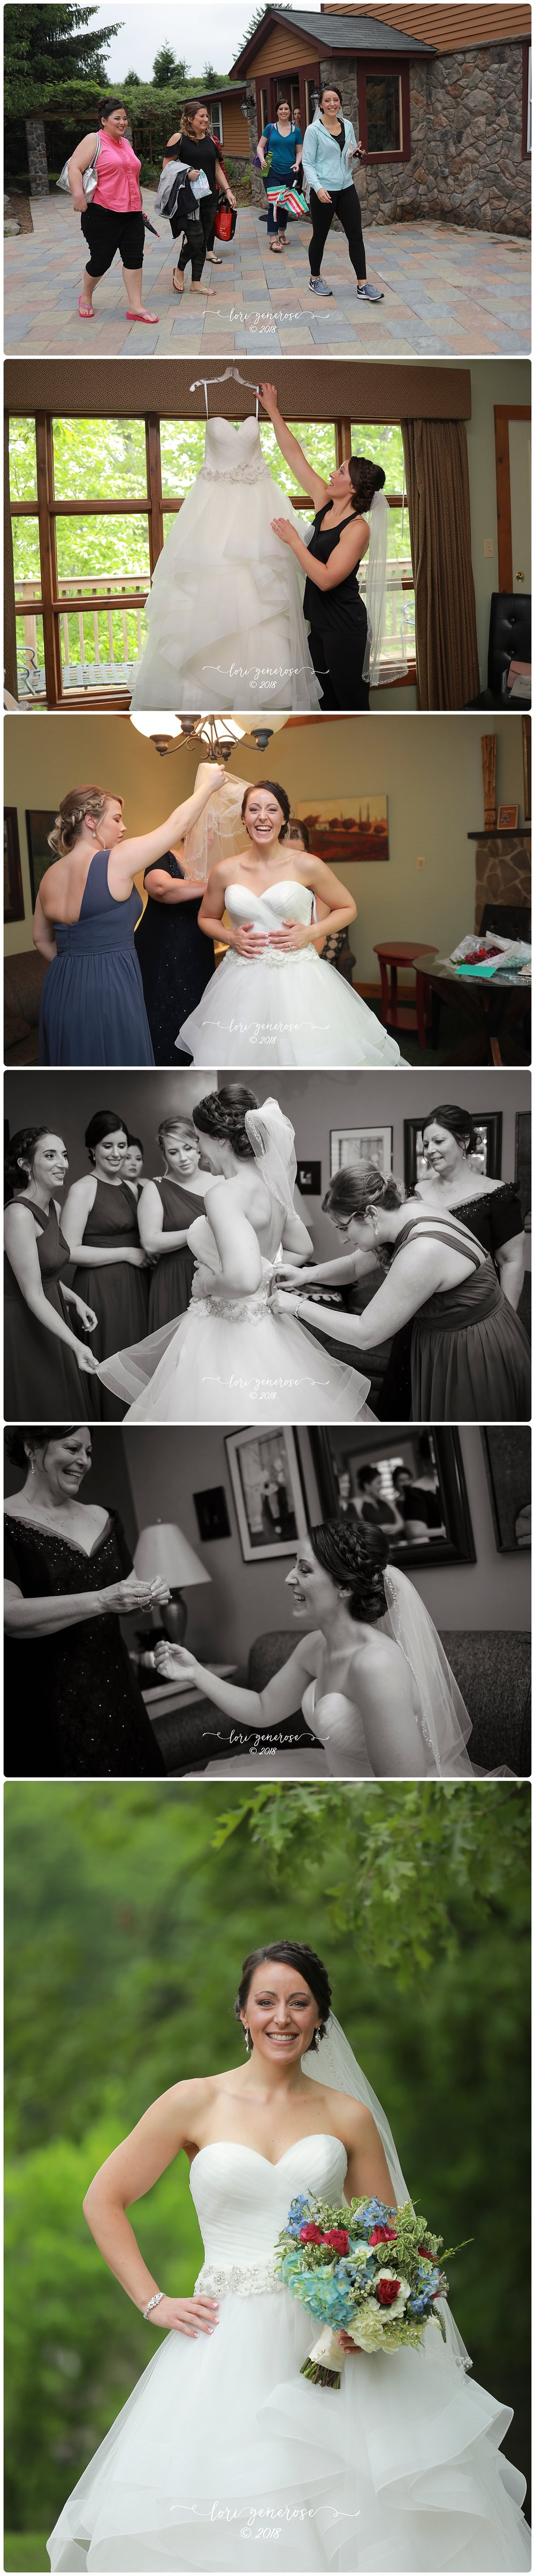 lgphotographylorigeneroseweddingbridegettingreadyweddingdressbridesmaids.jpg